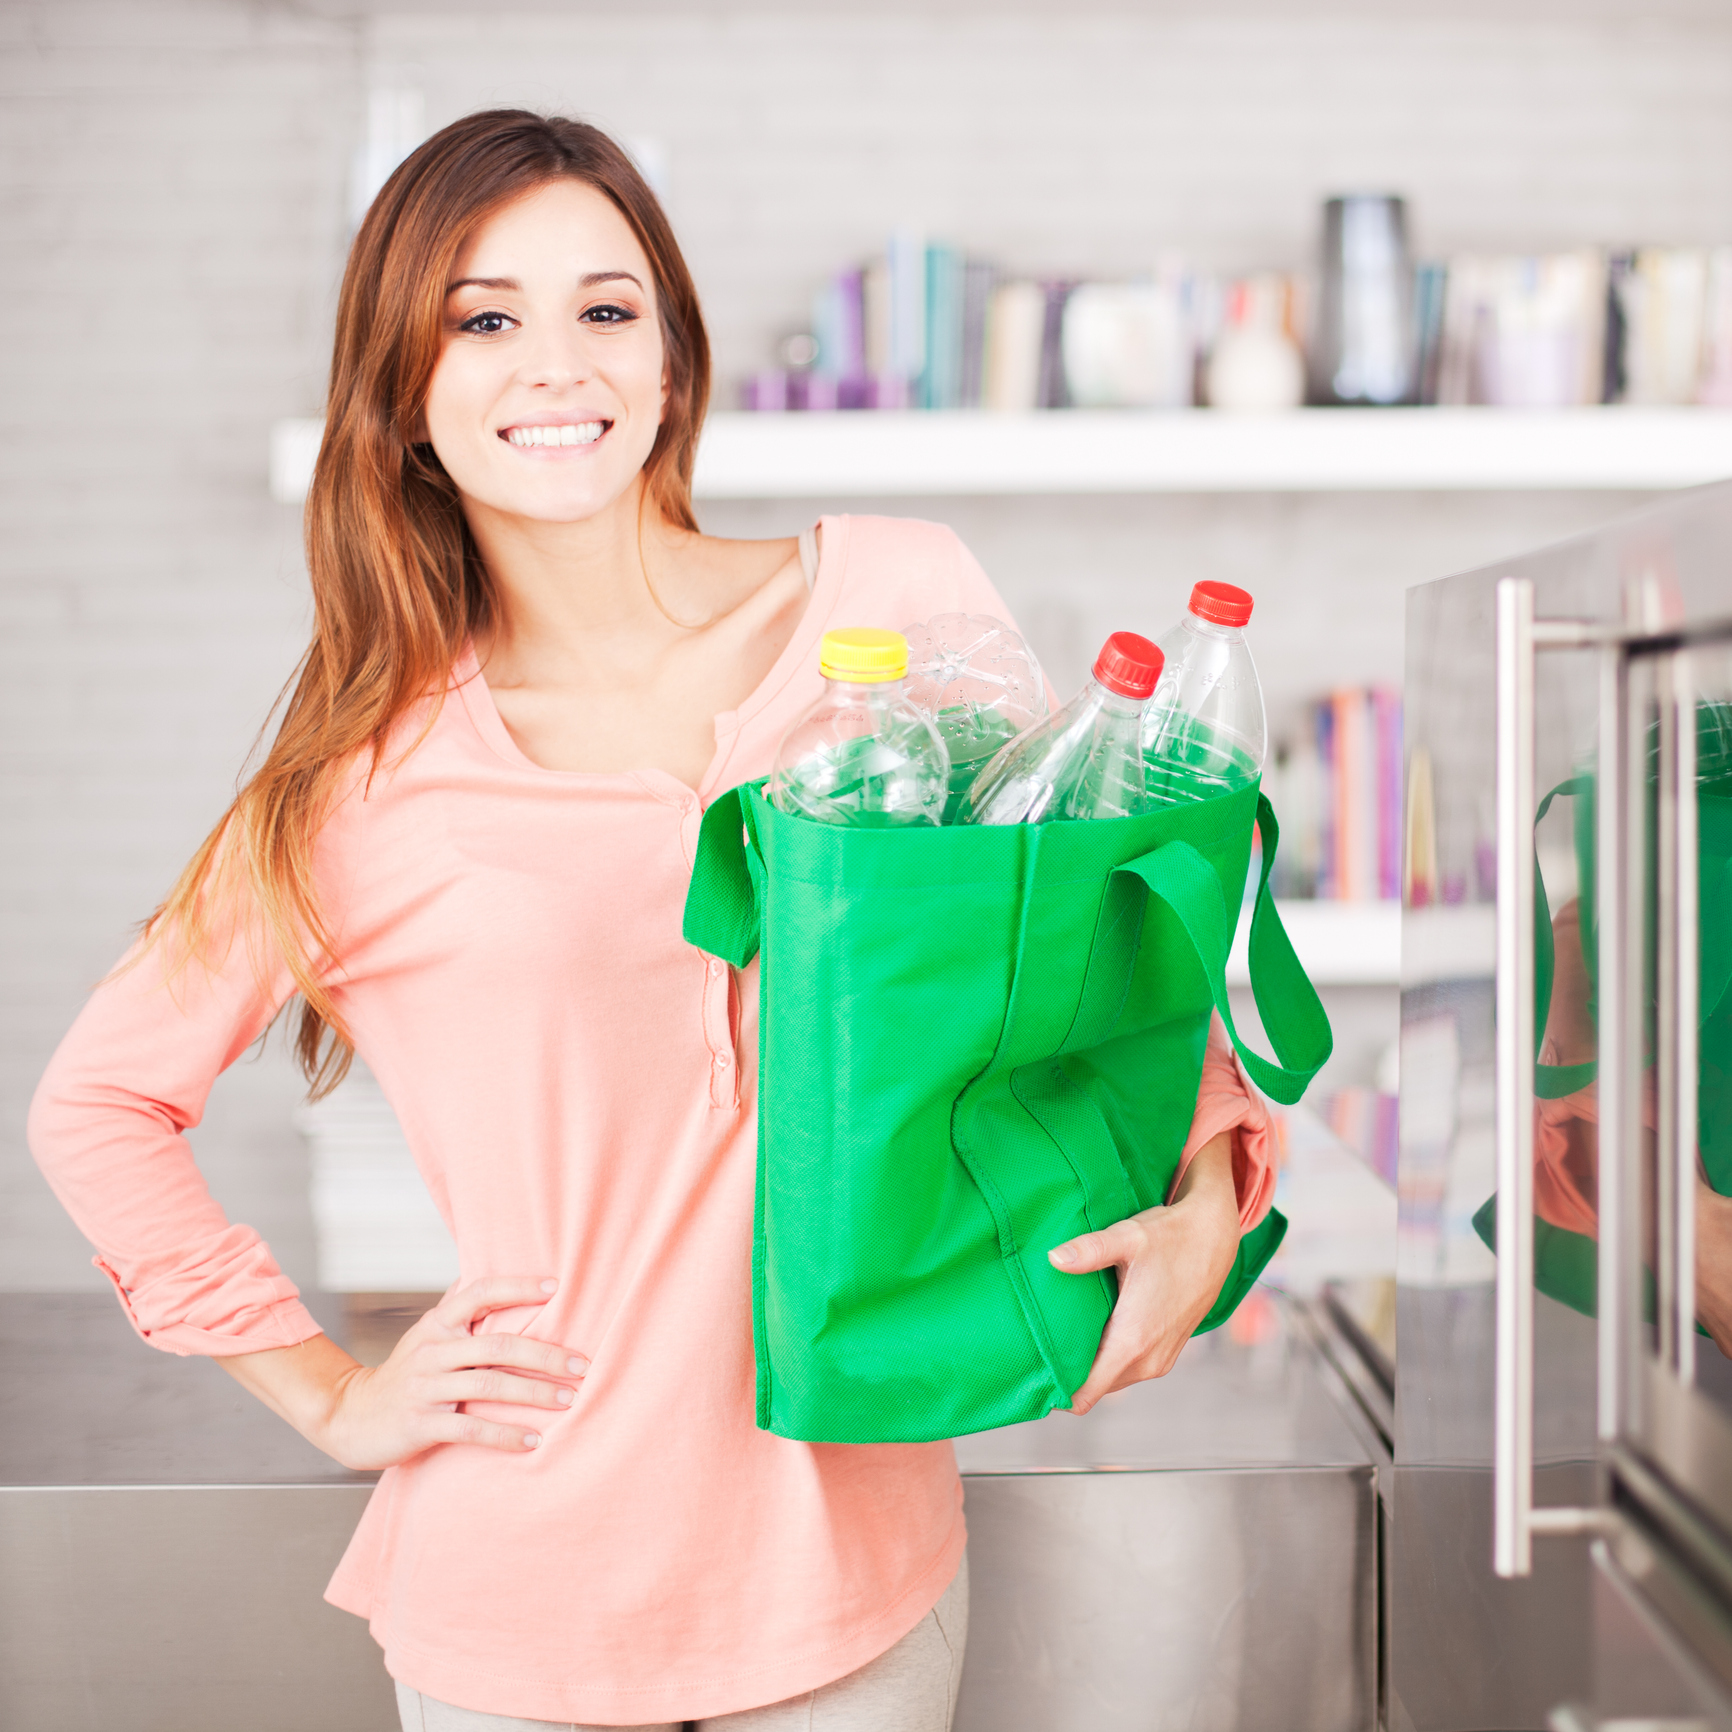 10 Easy Ways College Students Can Go Green